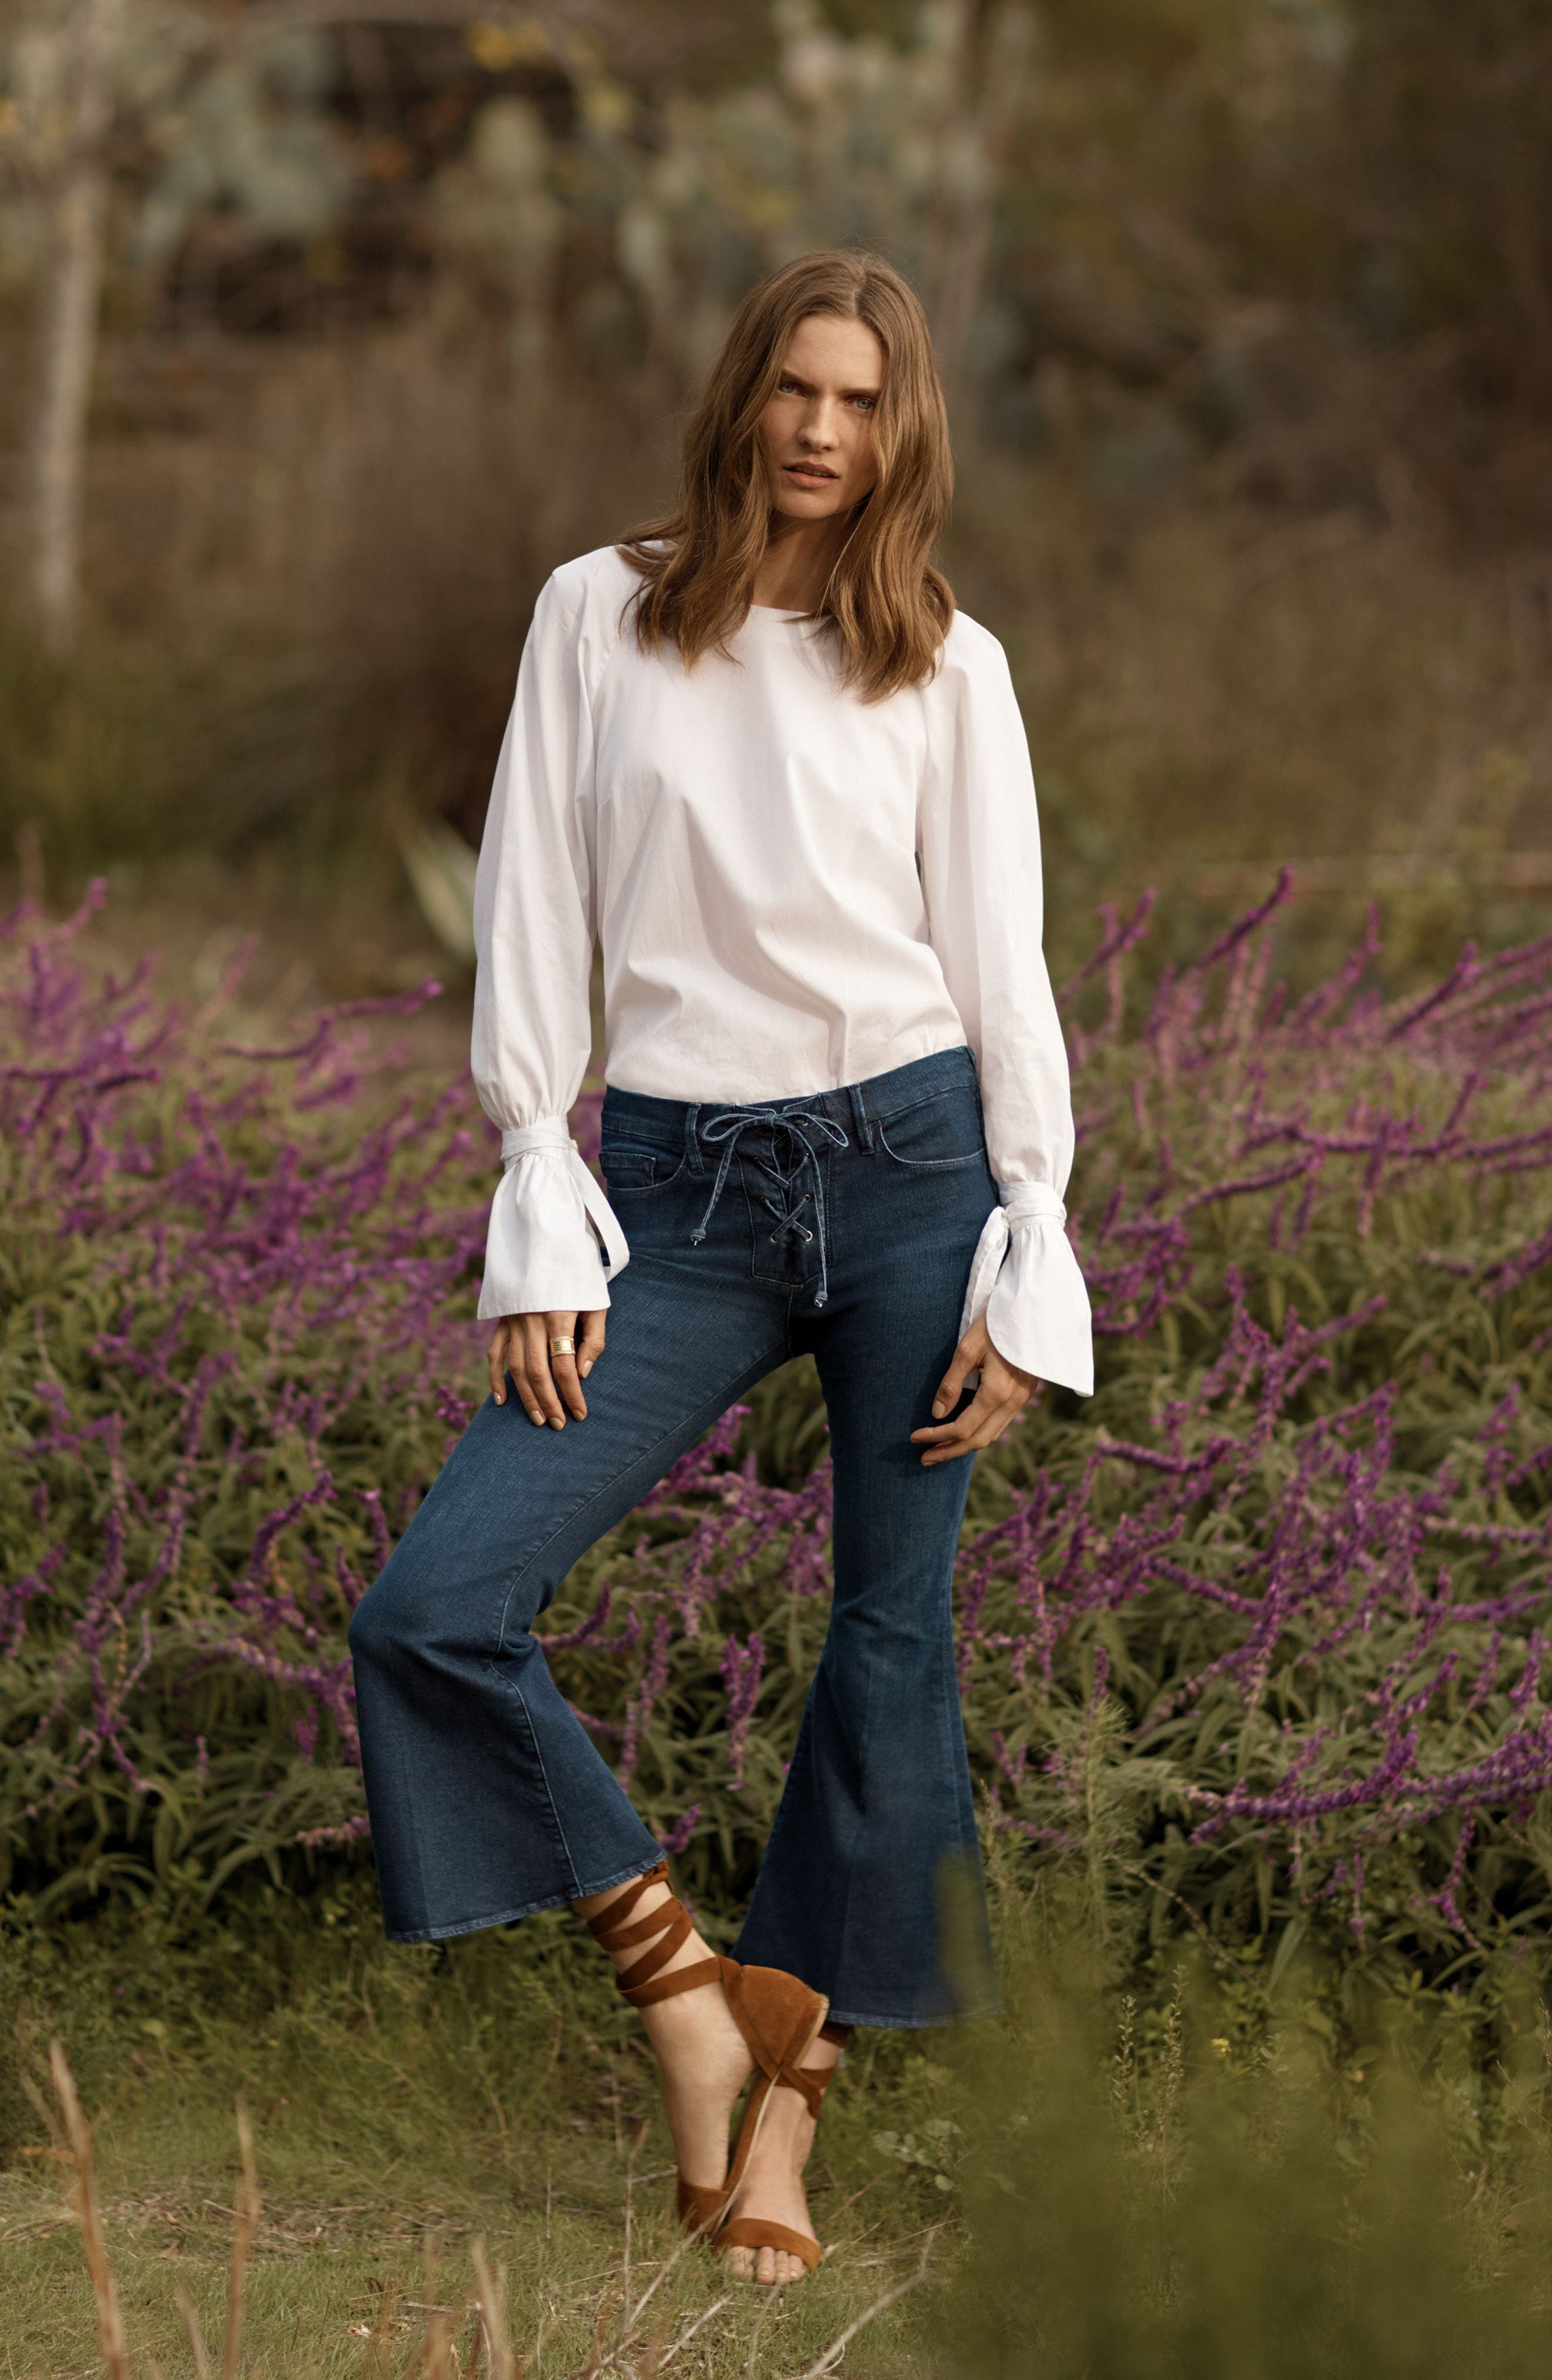 FRAME Blouse & Jeans Outfit with Accessories